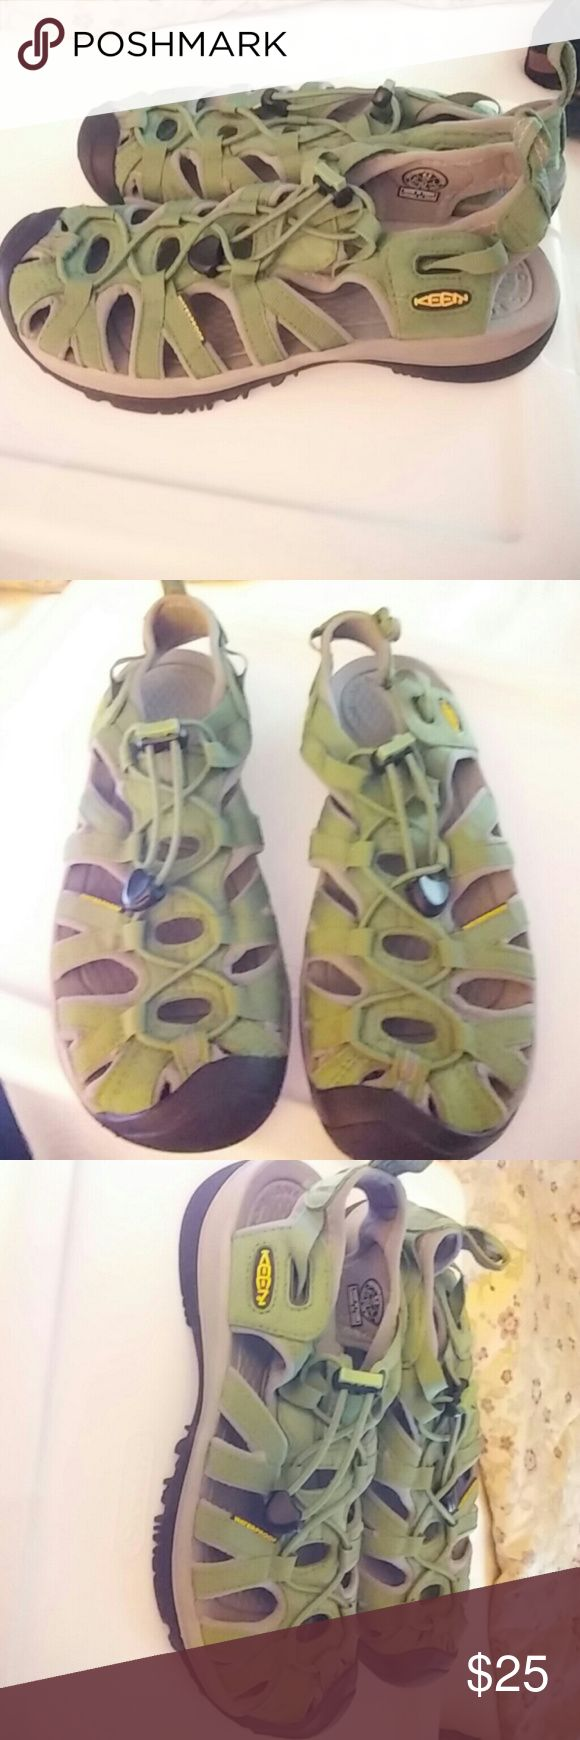 Sandals or shoes for hiking - Womens Sz6 Waterproof Keen Hiking Trail Sandle Preowned In Great Condtion Keen Hiking Trail Shoes